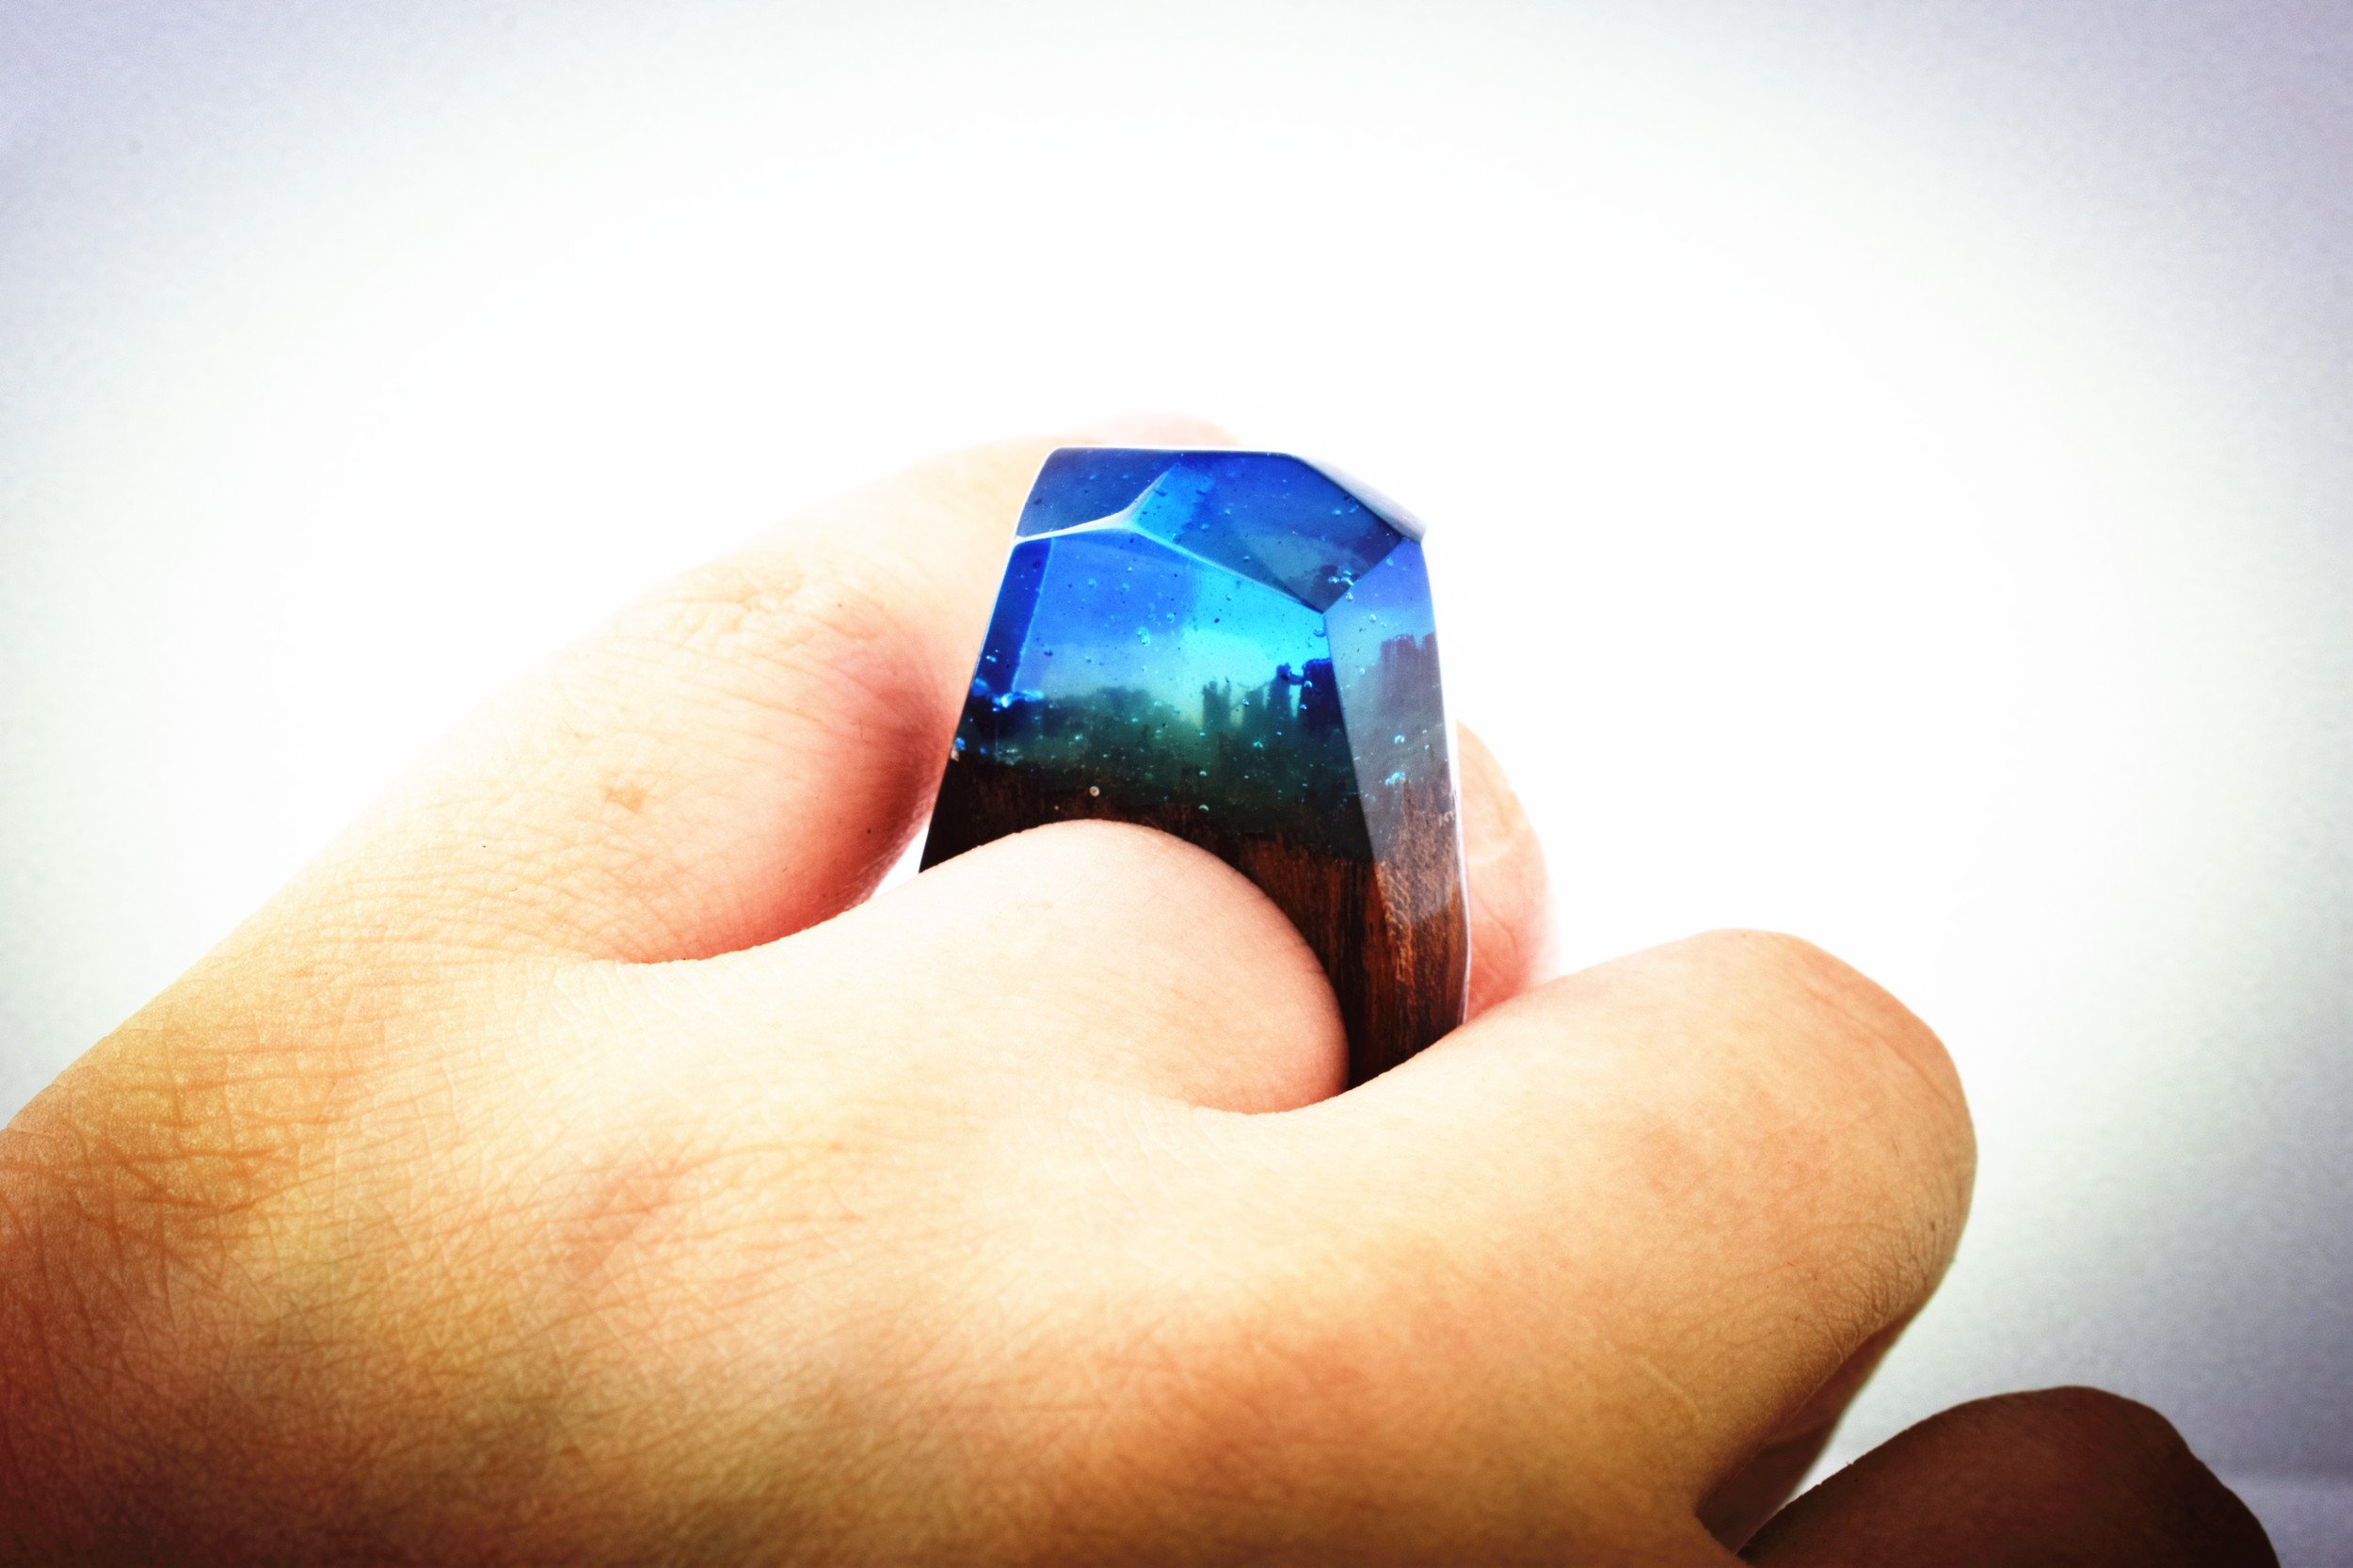 Heyou Love Handmade Wood Resin Ring With Nature Scenery Landscape Inside Jewelry by Heyou Love (Image #5)